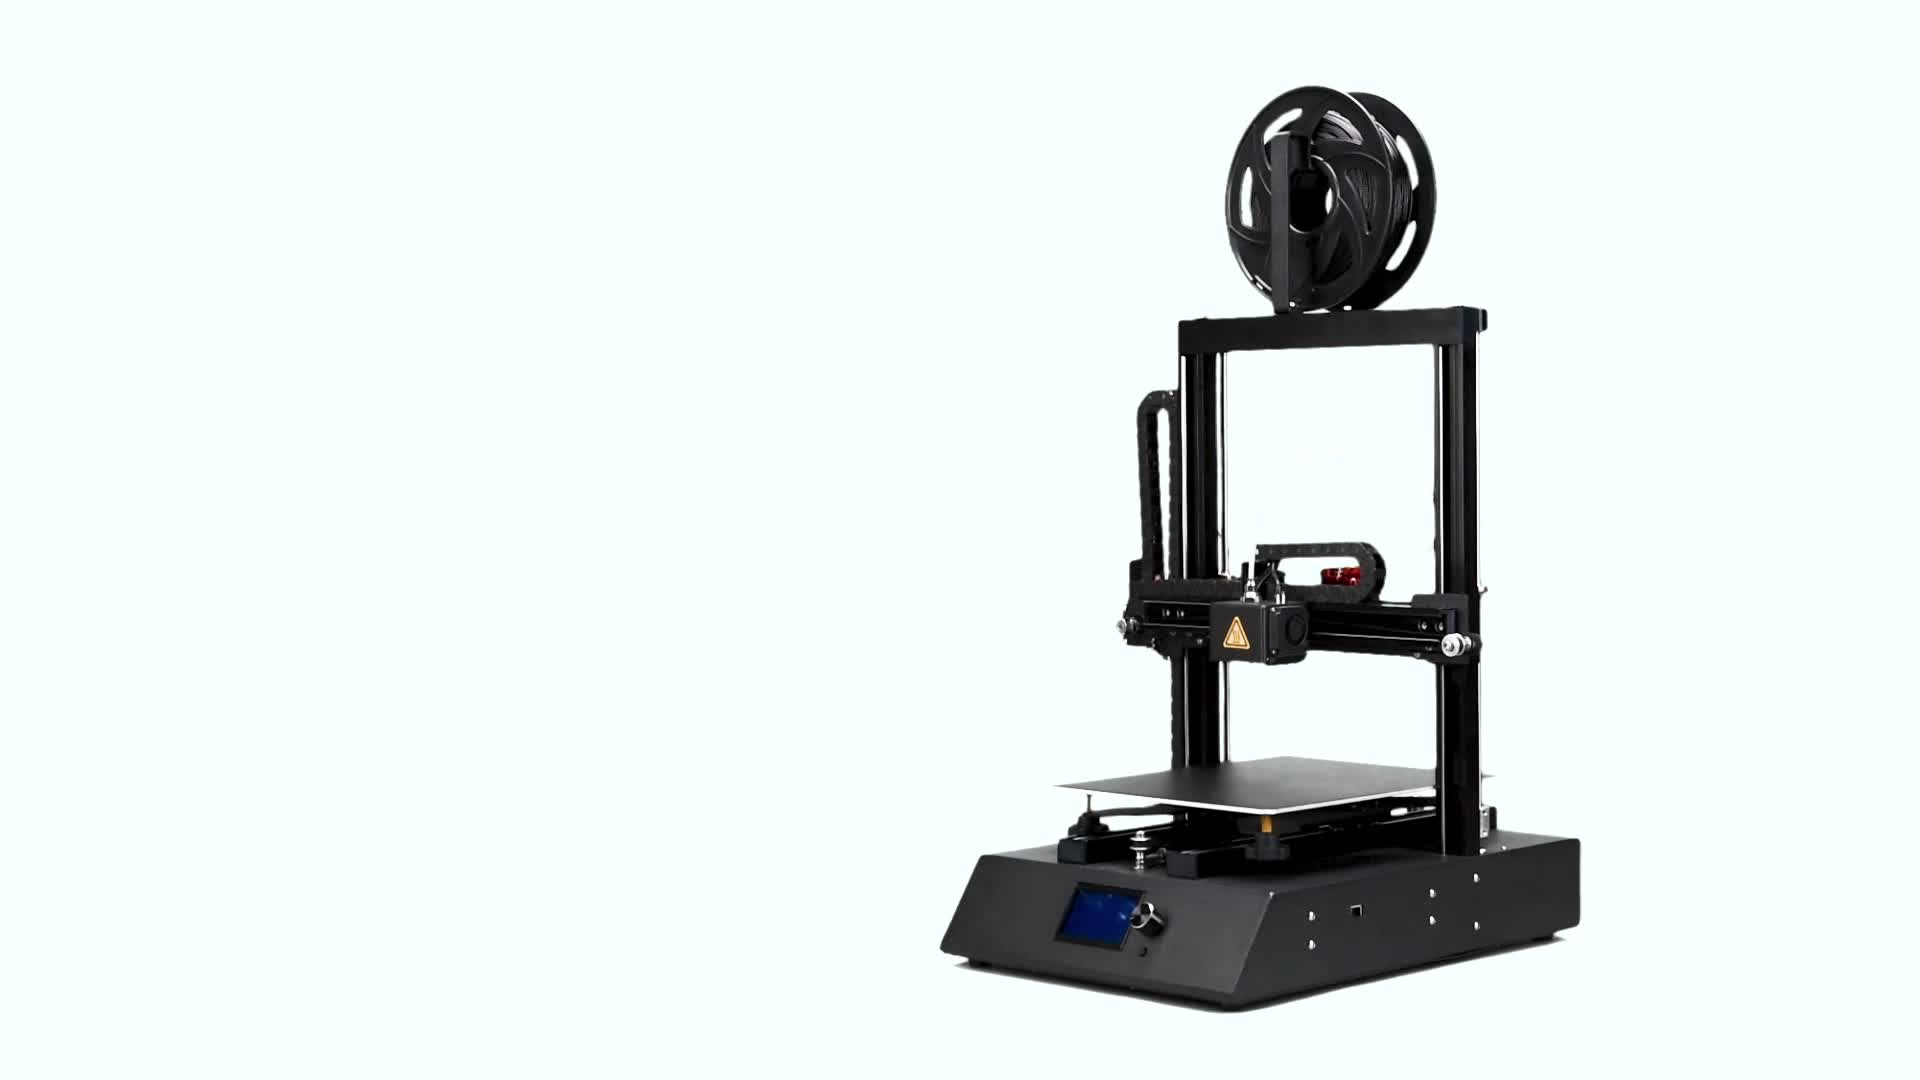 Ortur4 Overheating Protection Auto Bed Leveling System  Run-Out Detection FDM Easy Assembly 3d Printer Machine